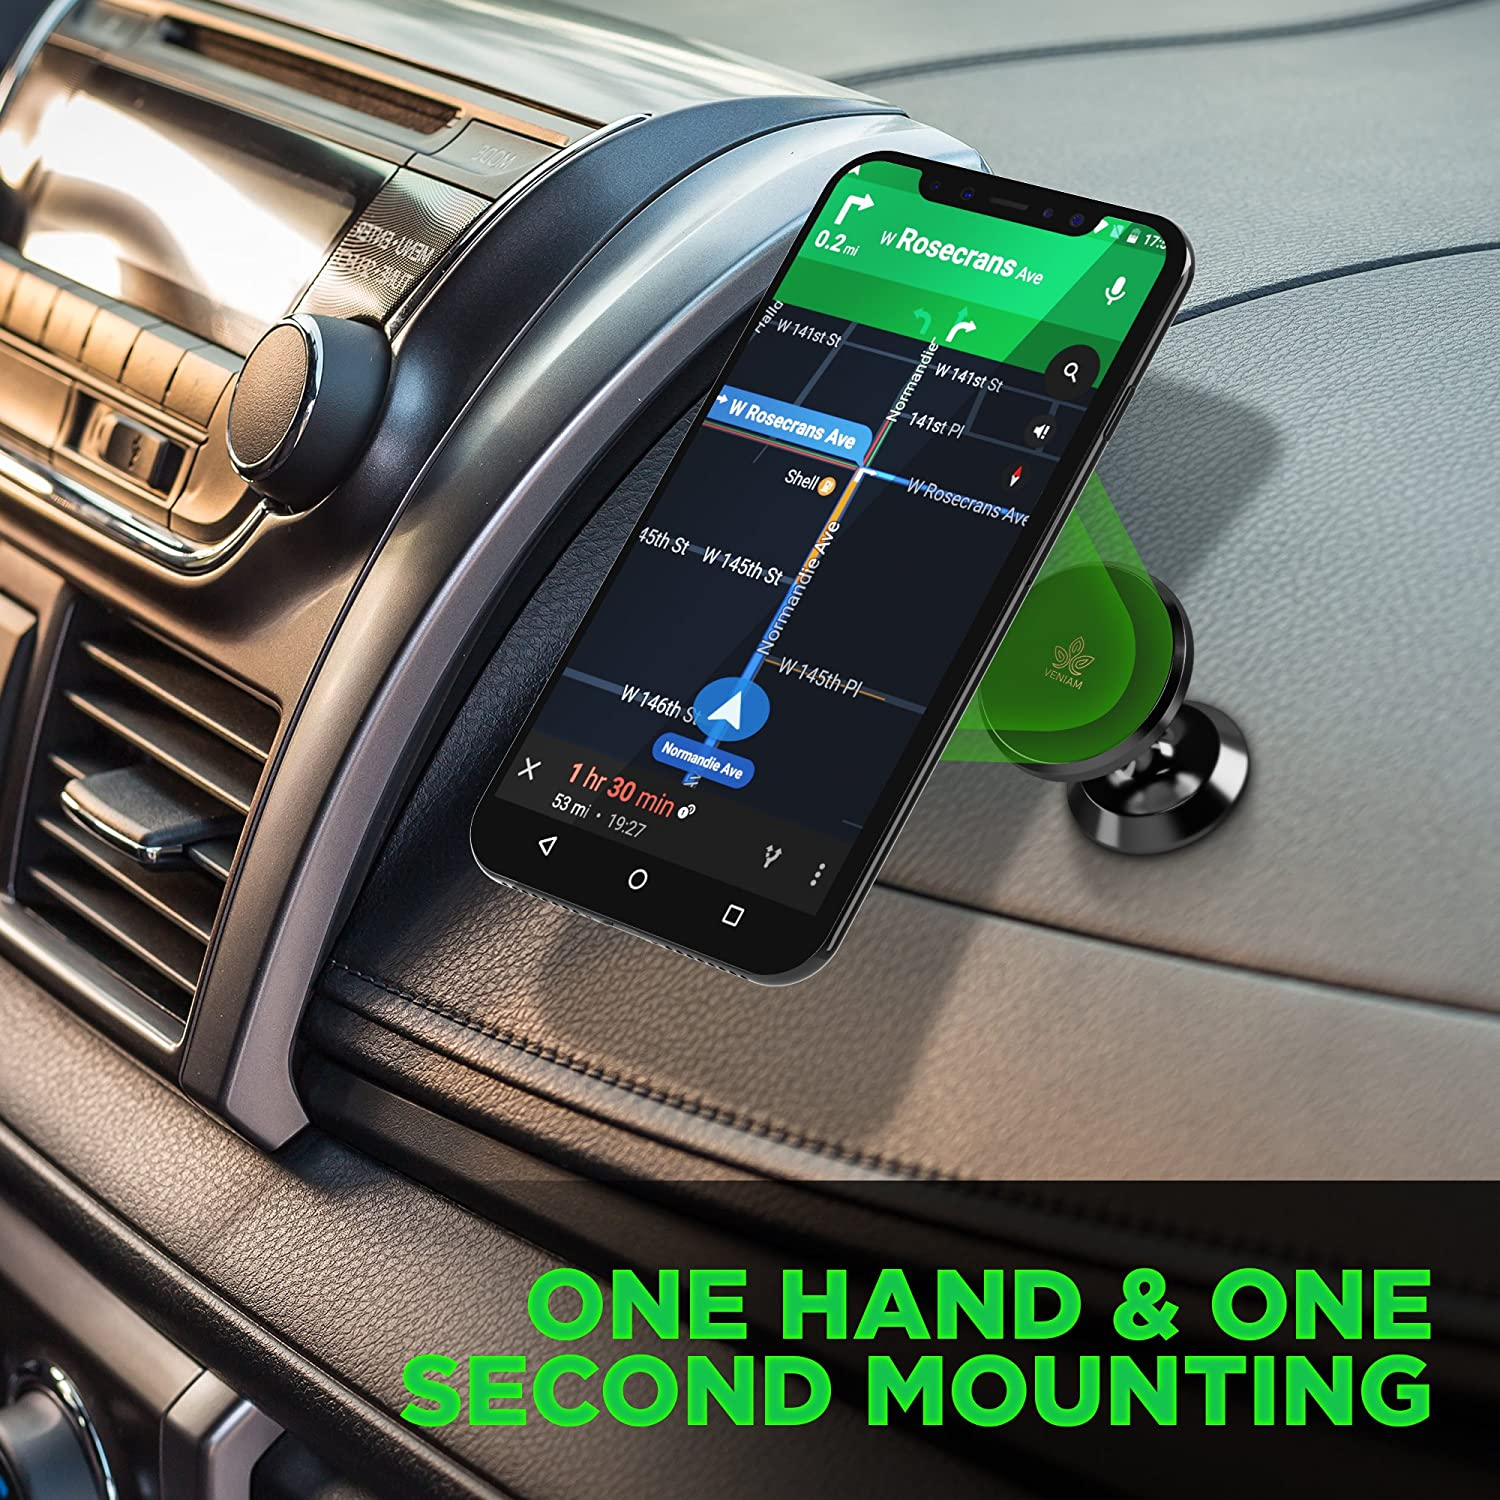 Universal Dash 360˚ Rotation Strong Magnet Cell Phone Holder for Smartphones Compatible with Samsung S9 // S8 // S7 // Note 9 iPhone X//Plus Magnetic Phone Car Mount New 2019 Design Black veniam 4351484133